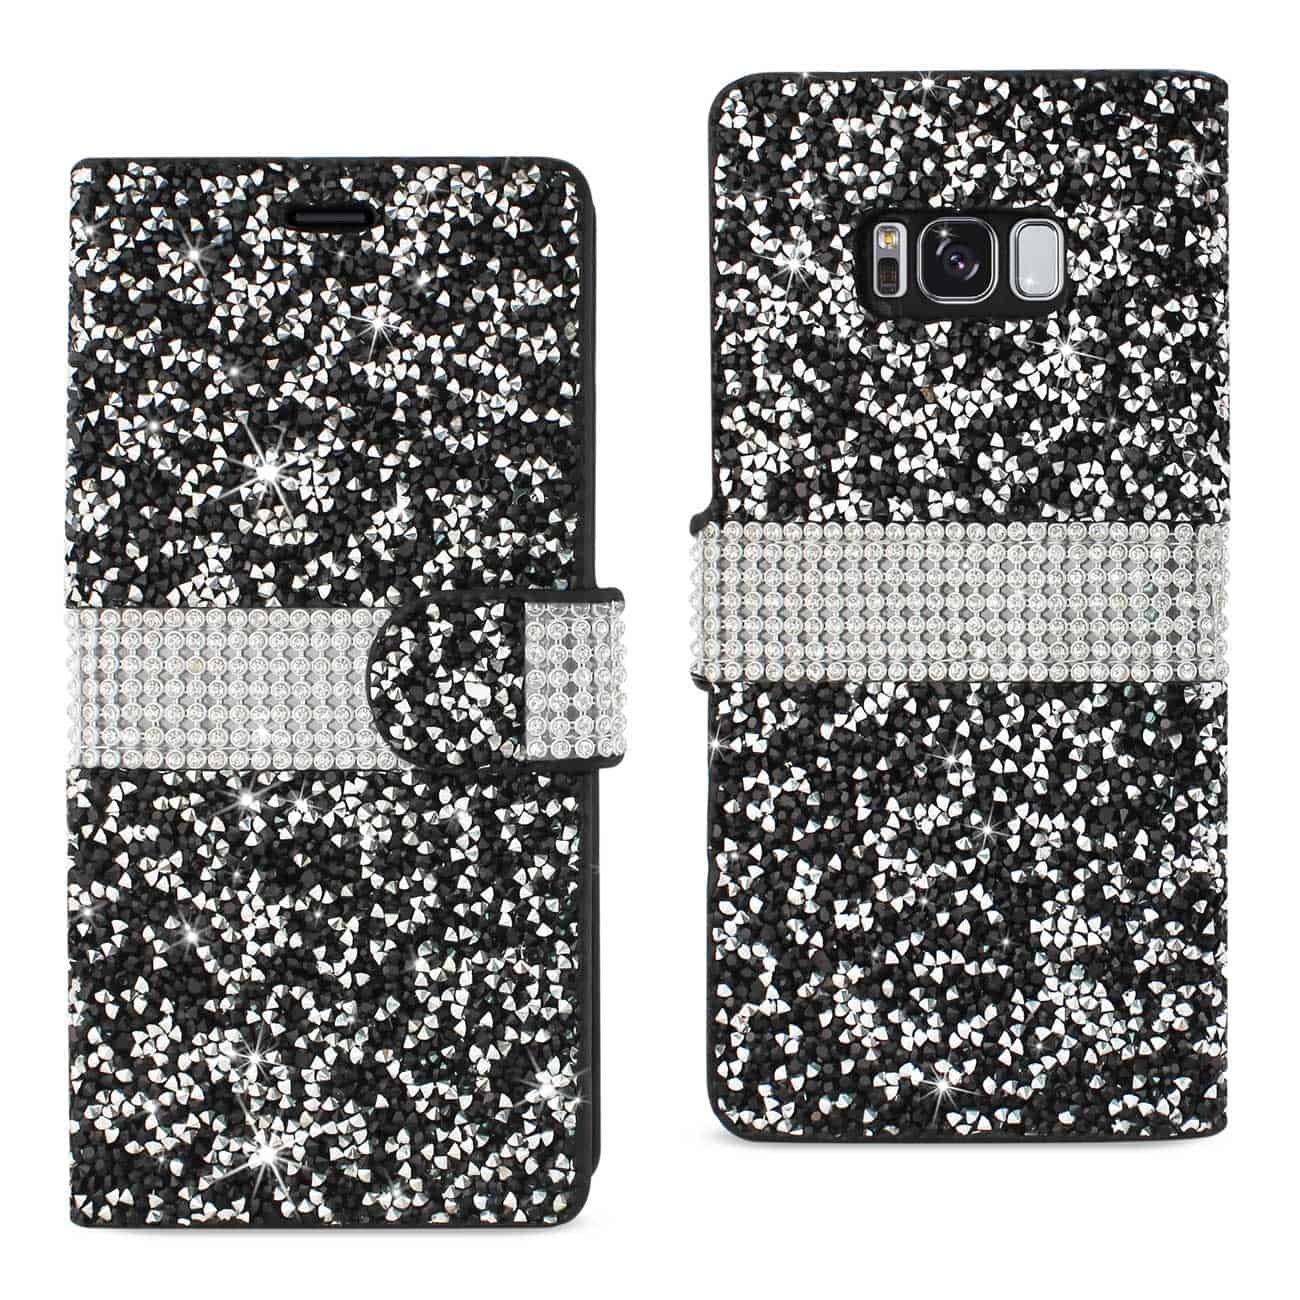 SAMSUNG GALAXY S8 EDGE/ S8 PLUS DIAMOND RHINESTONE WALLET CASE IN BLACK